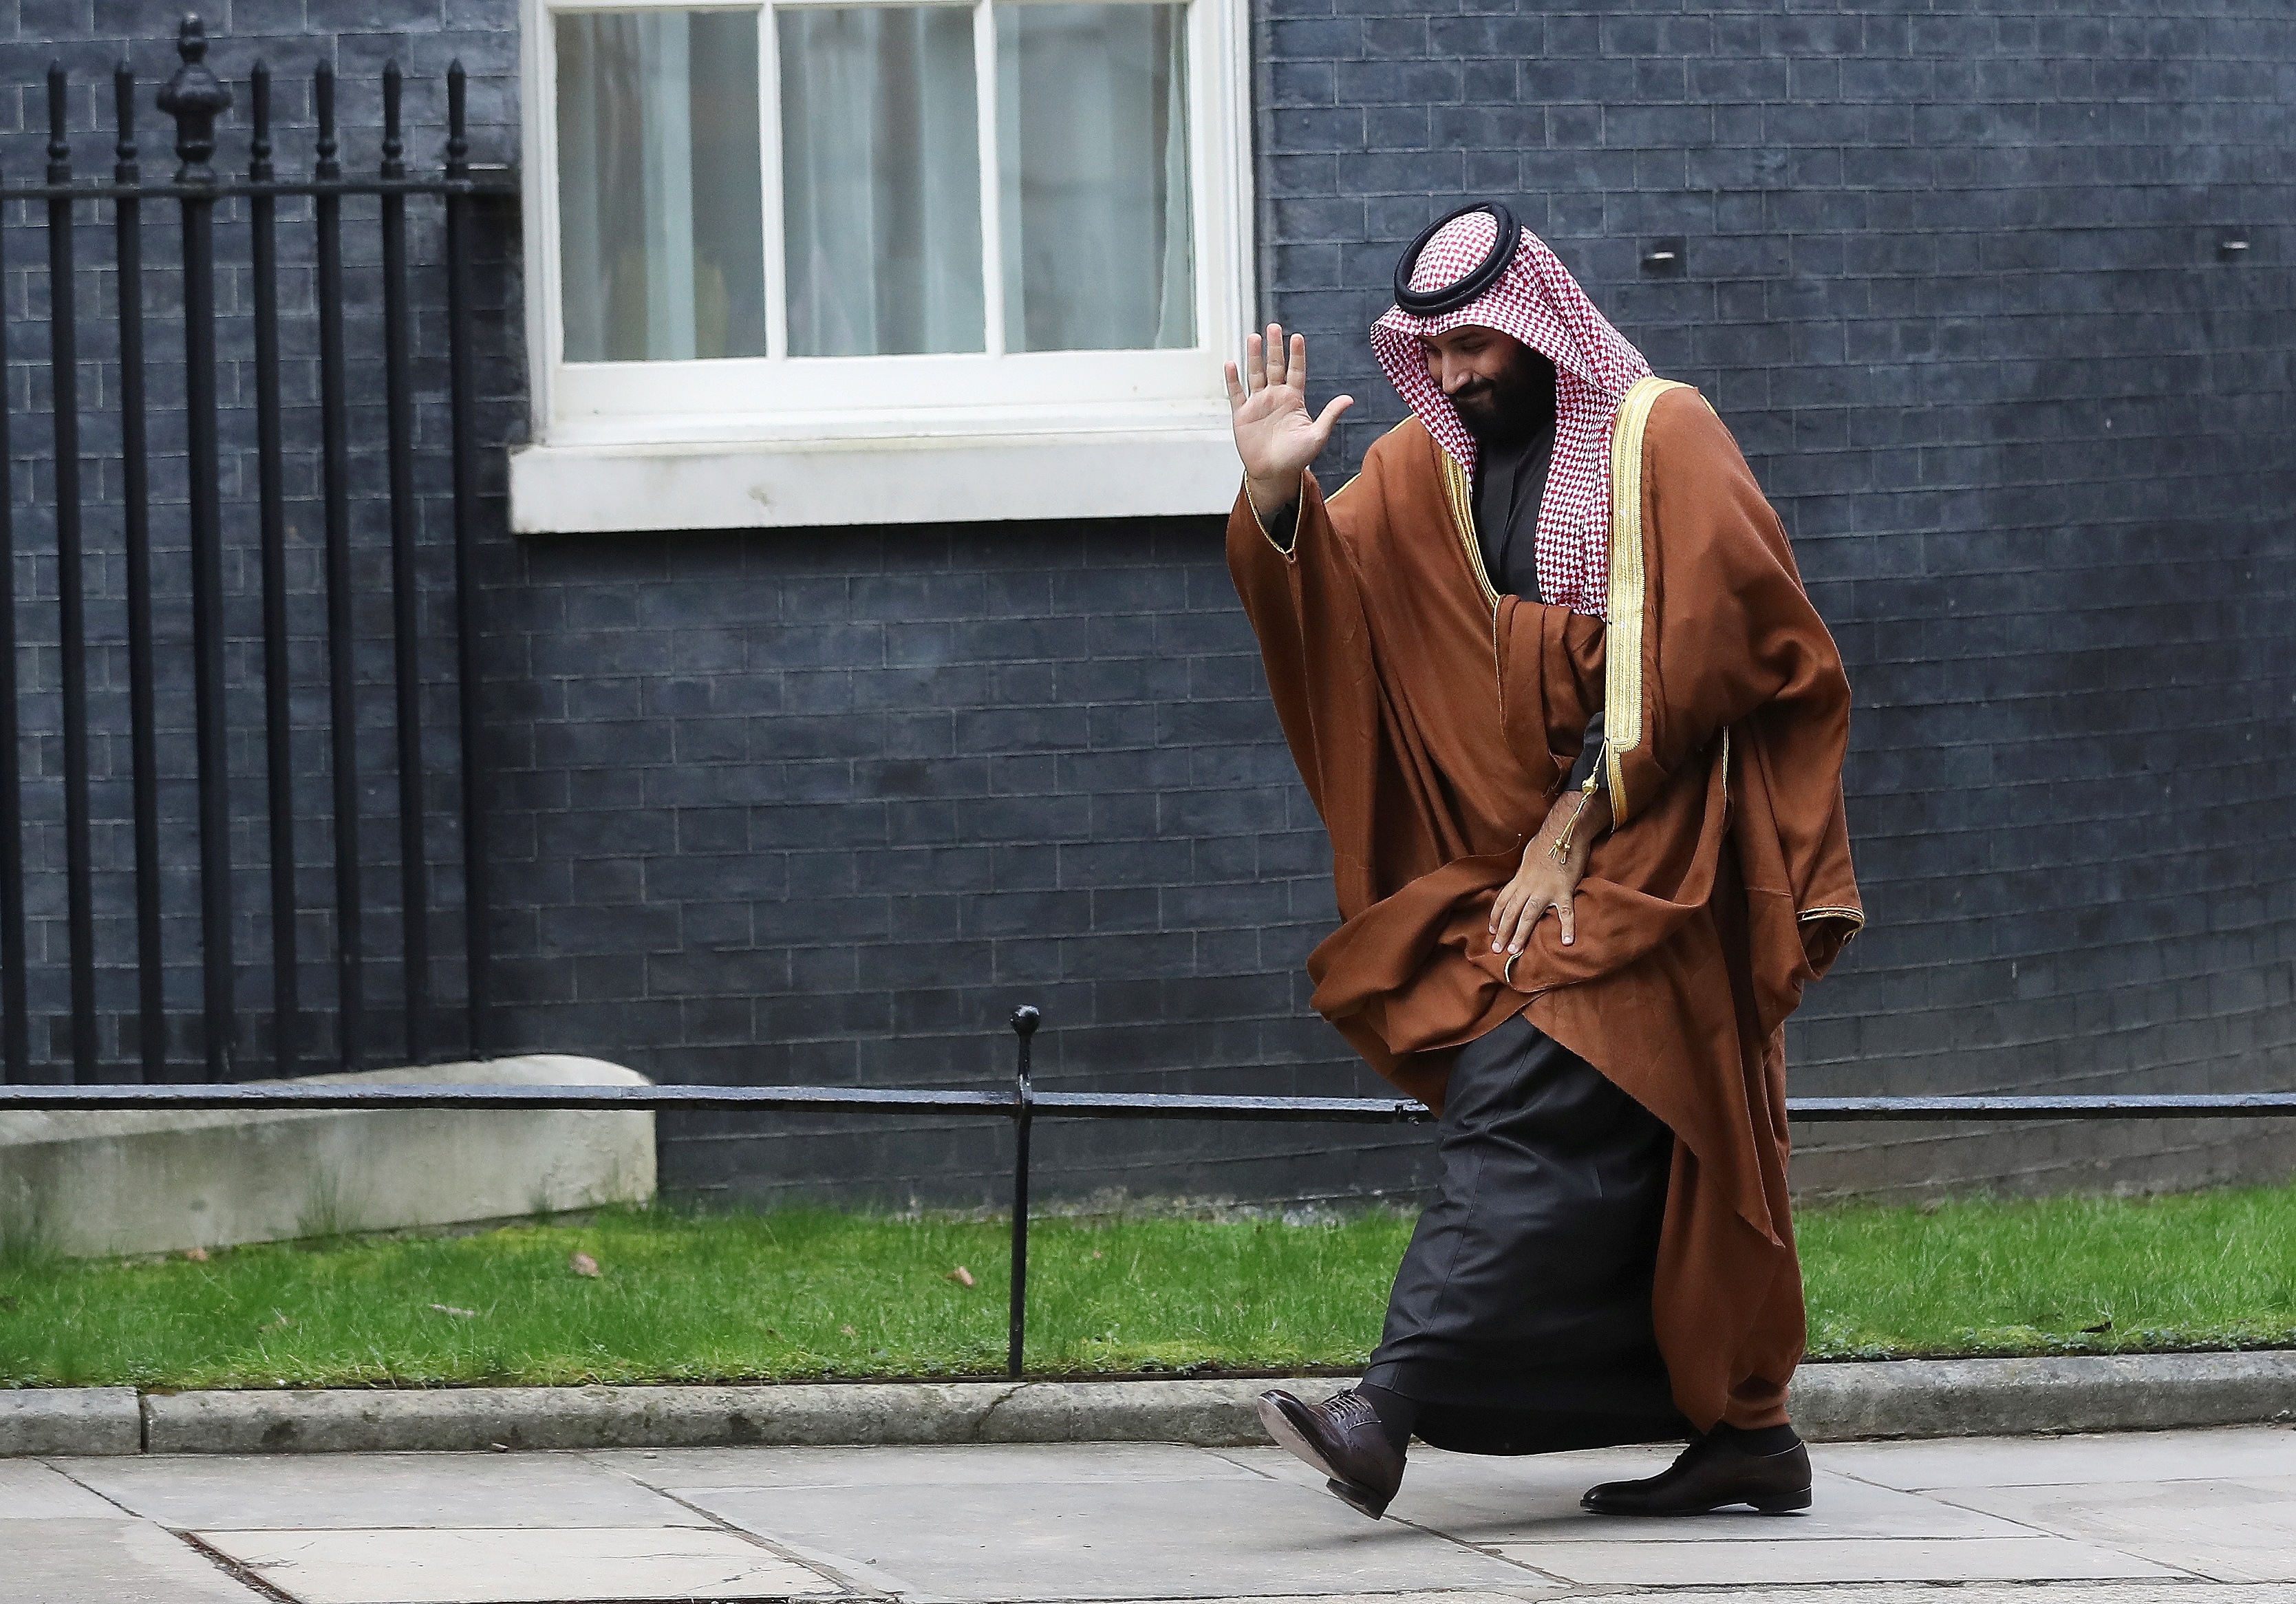 Crown Prince of Saudi Arabia Mohammad bin Salman arrives to meet Britain's Prime Minister Theresa May in Downing Street in London, March 7, 2018. REUTERS/Simon Dawson - RC19929105E0